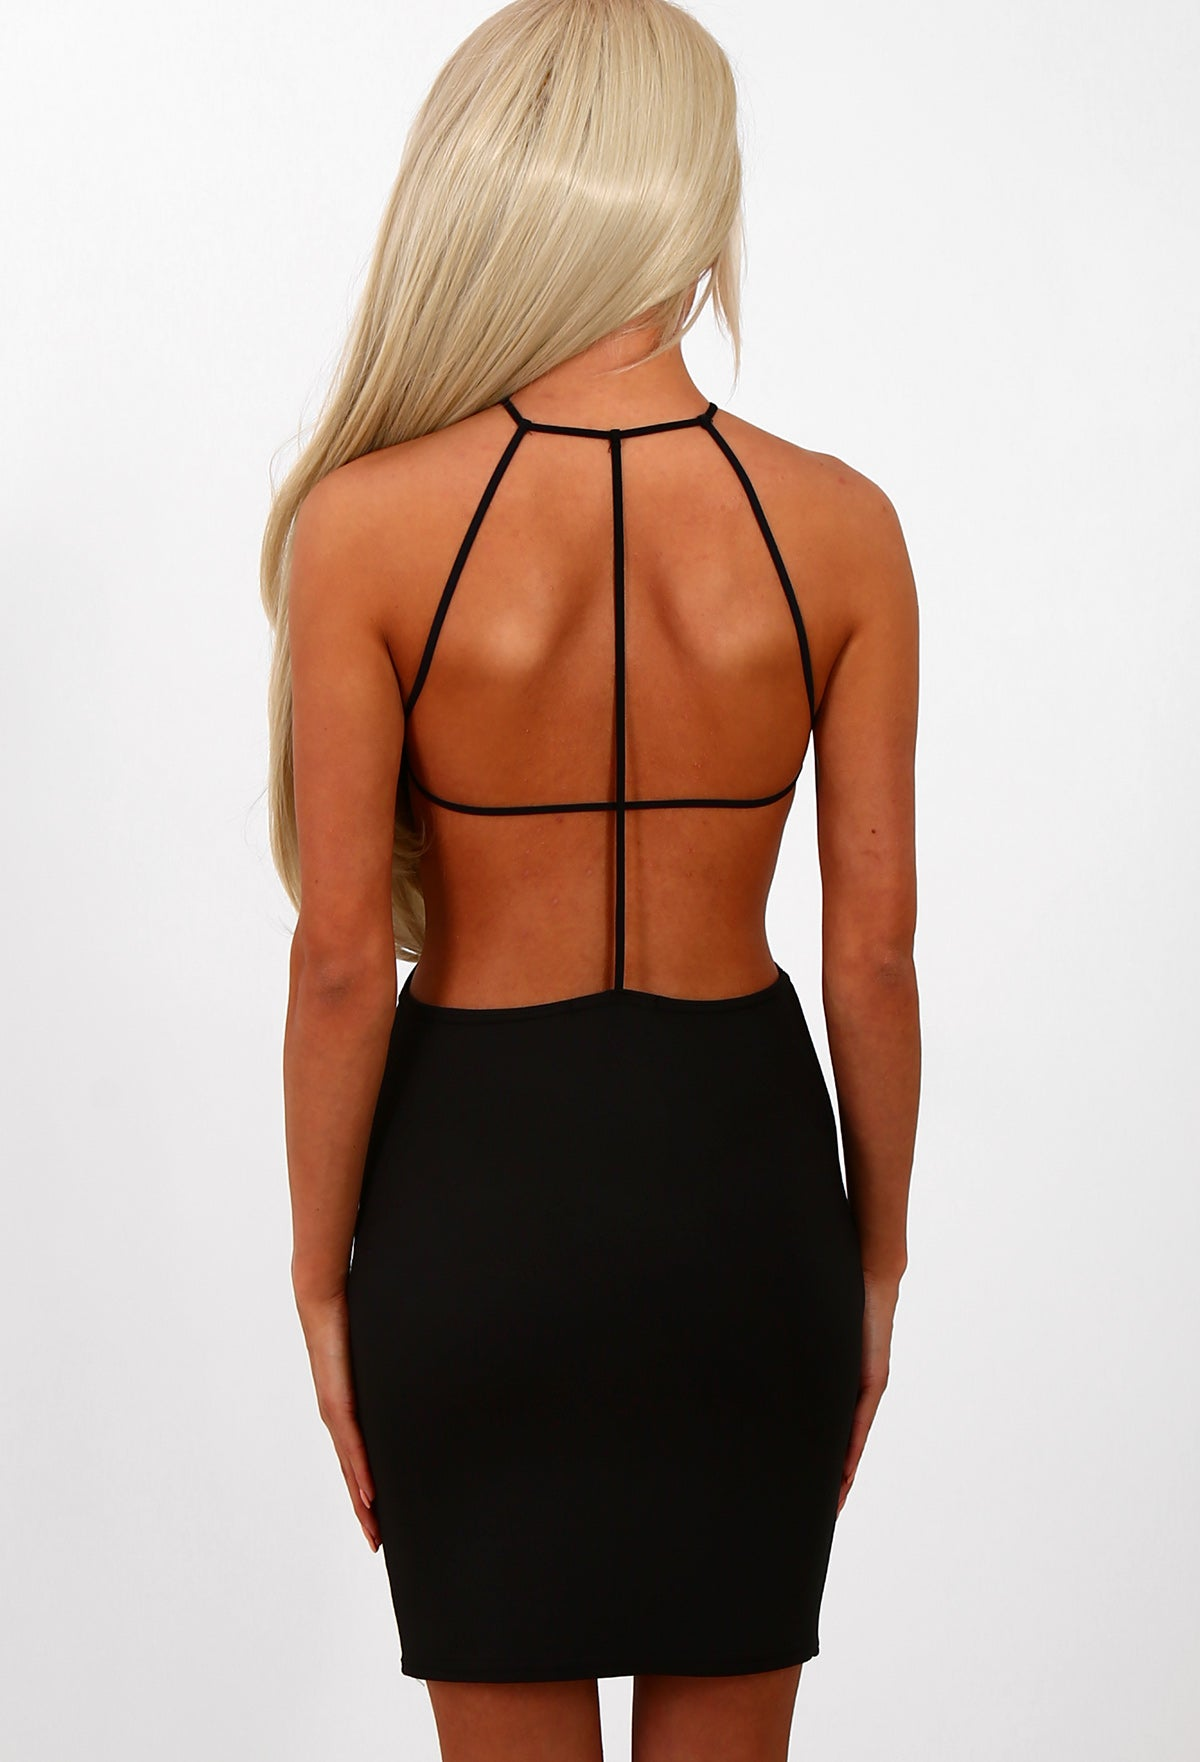 33300f8d03cb Bringing Sexy Back Black Strappy Backless Mini Dress – Pink Boutique UK